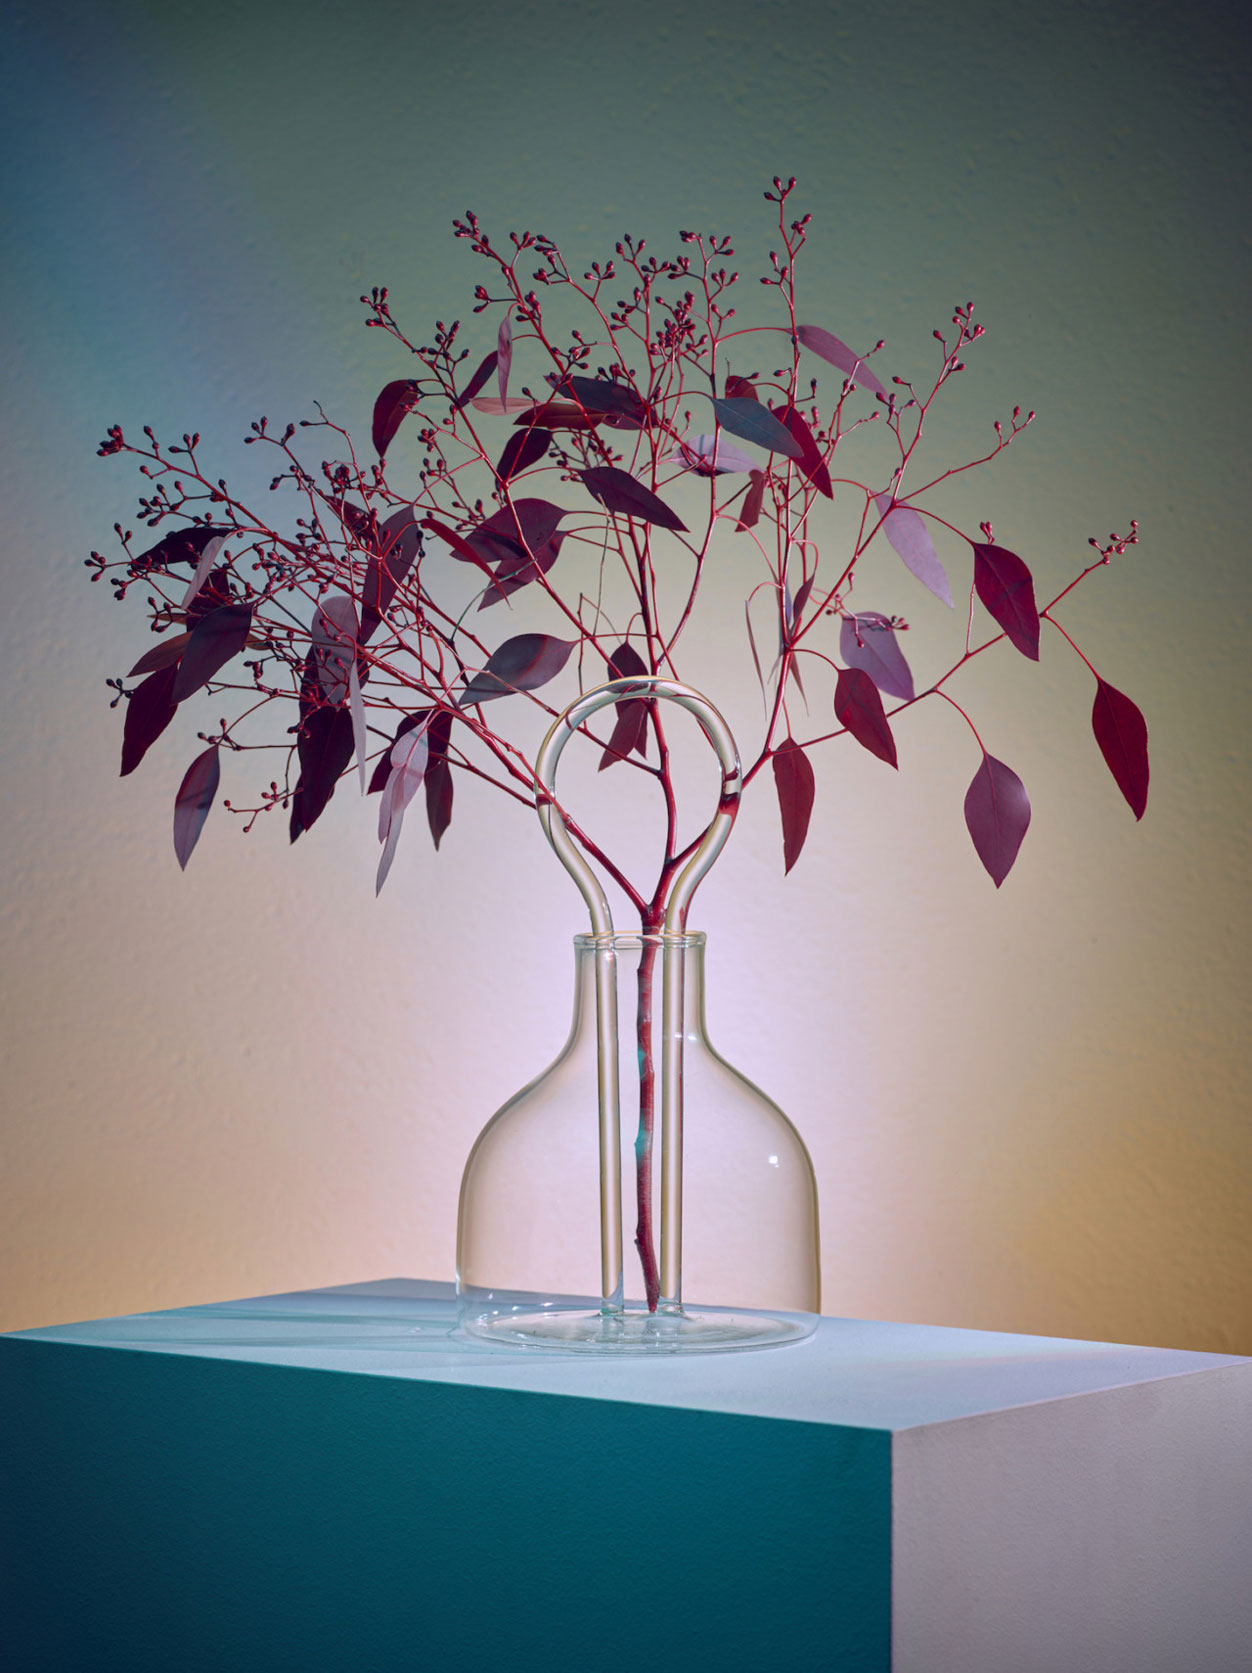 Da Vetro: a limited edition glass collection of vases inspired by human gestures